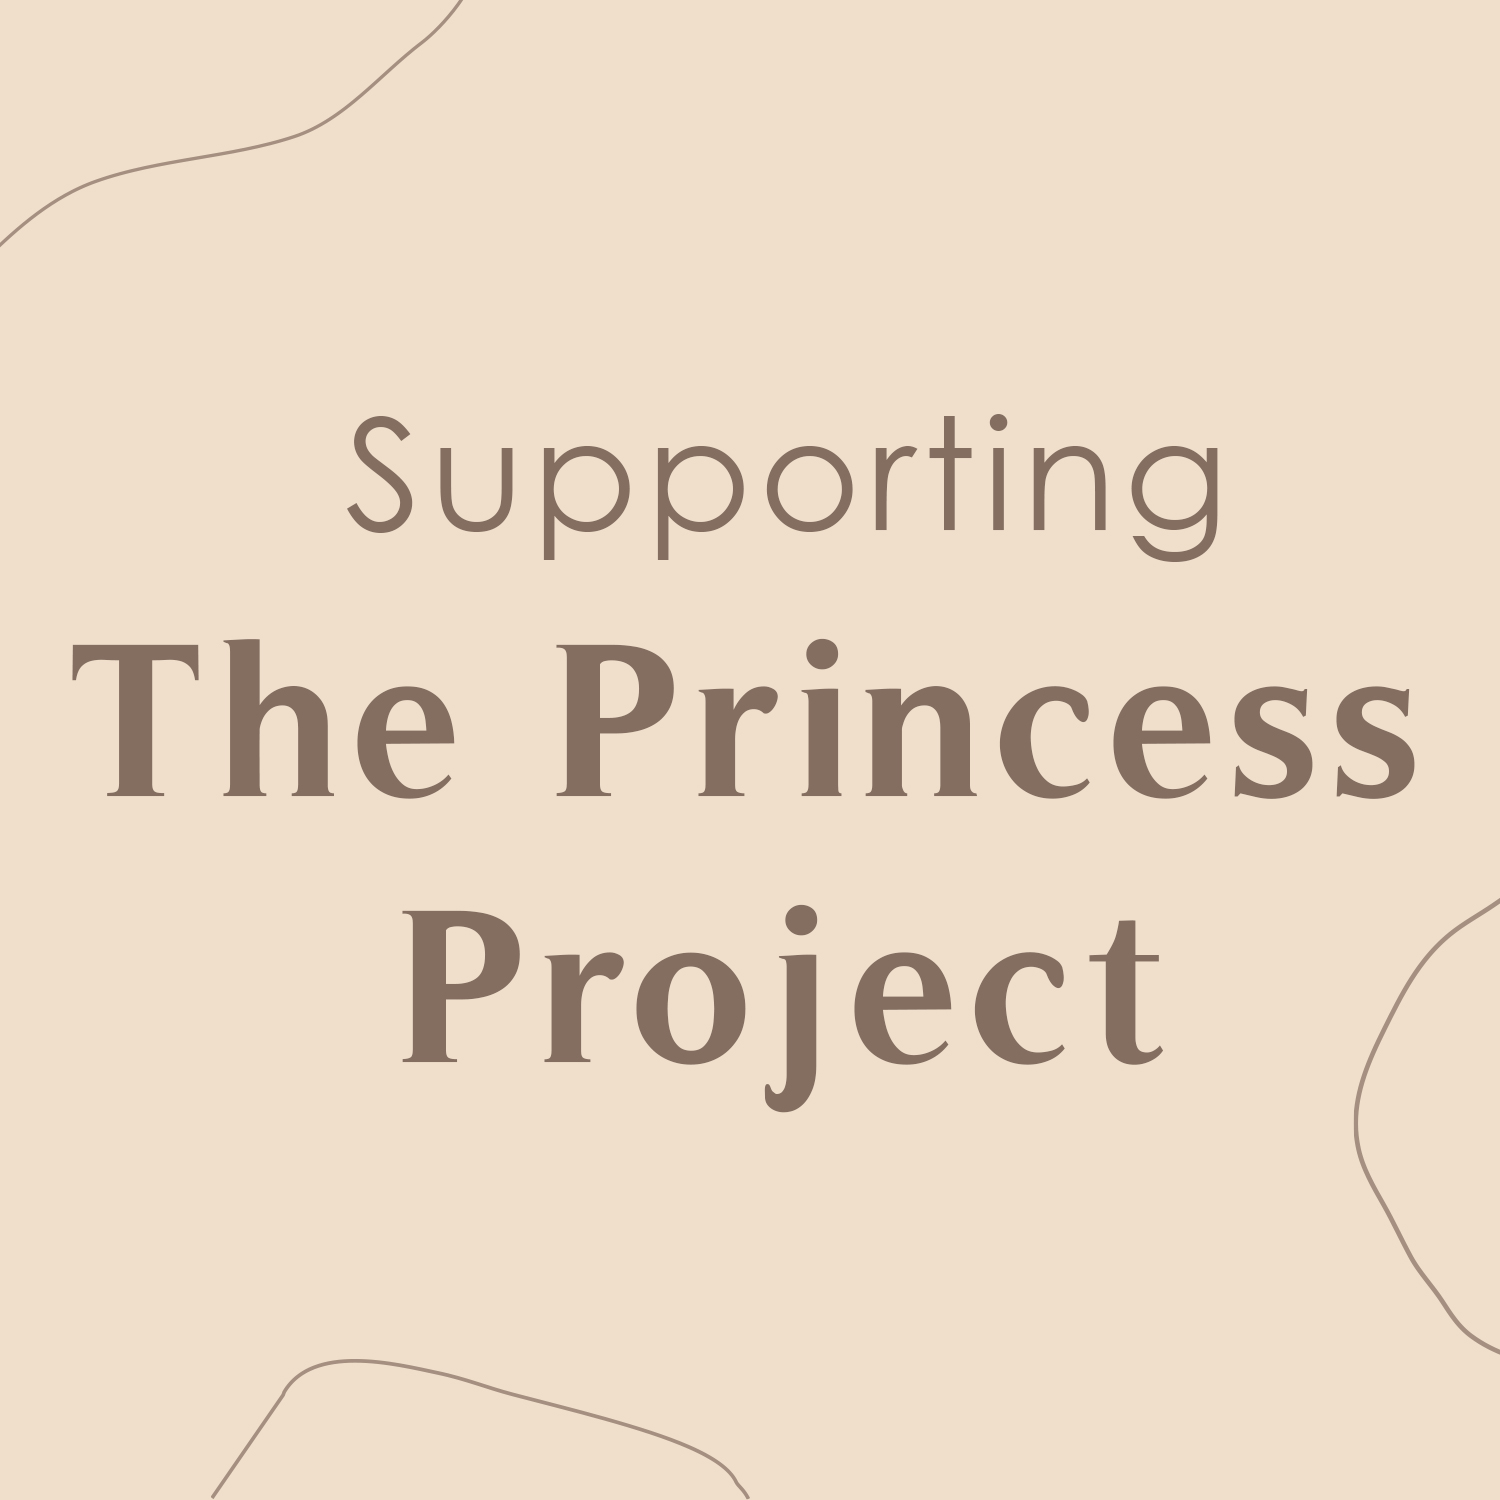 Donate R10 to The Princess Project -